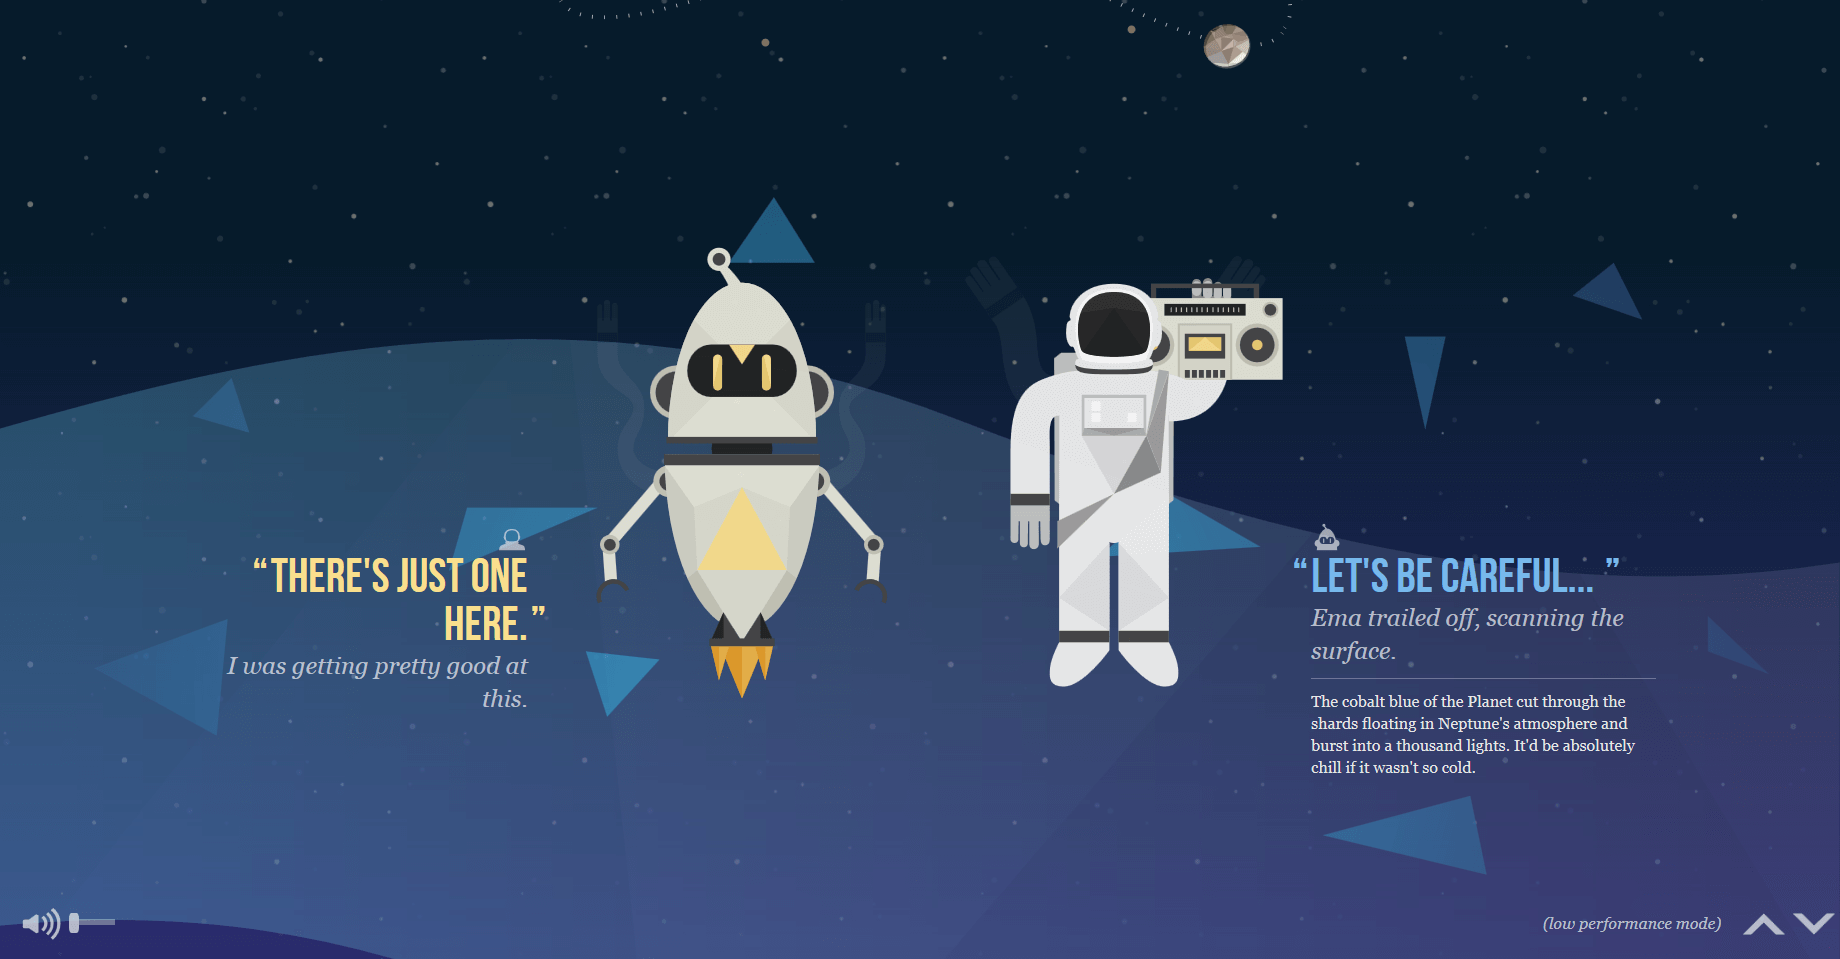 Parallax websites: scrolling with 3D effect - 1&1 IONOS